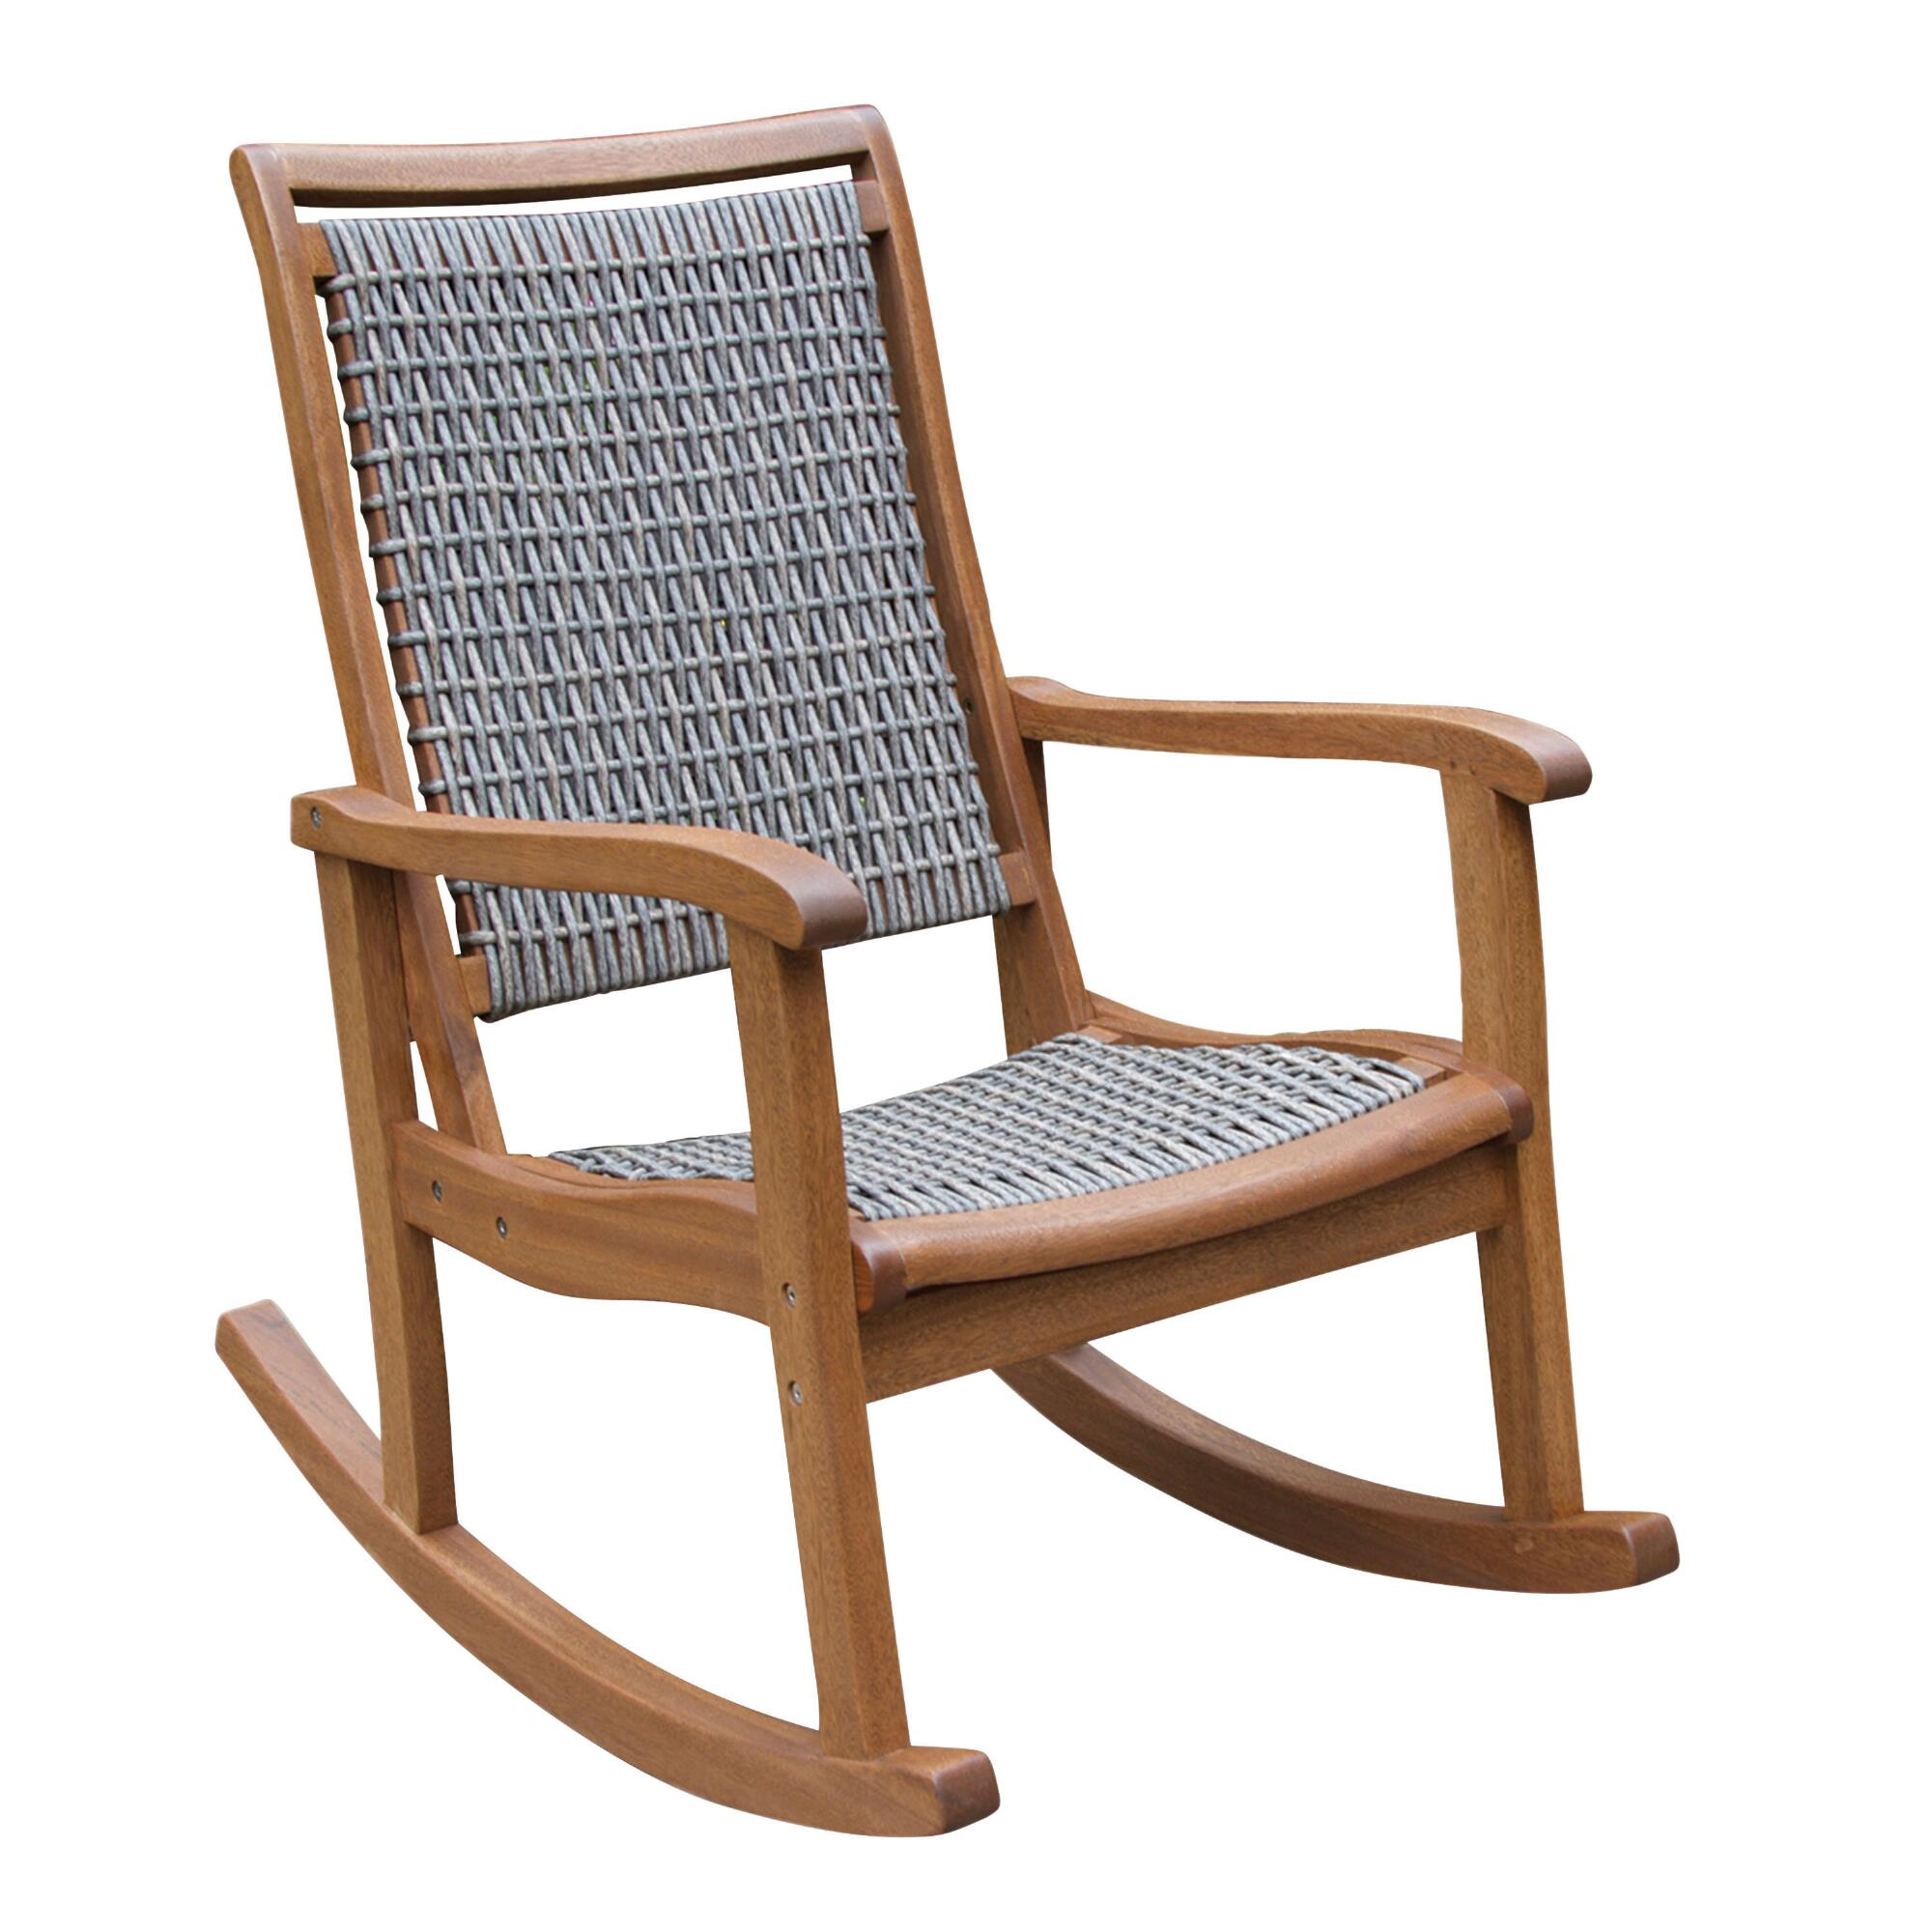 Outdoor Rocking Chair Designs further Country Wicker Rocking Chair additionally Oval Office Decor additionally Hanging Basket Double Hammock Indoor Hanging Basket Swing Hanging besides Outdoor Wicker Swivel Chair. on discount wicker rocking chairs